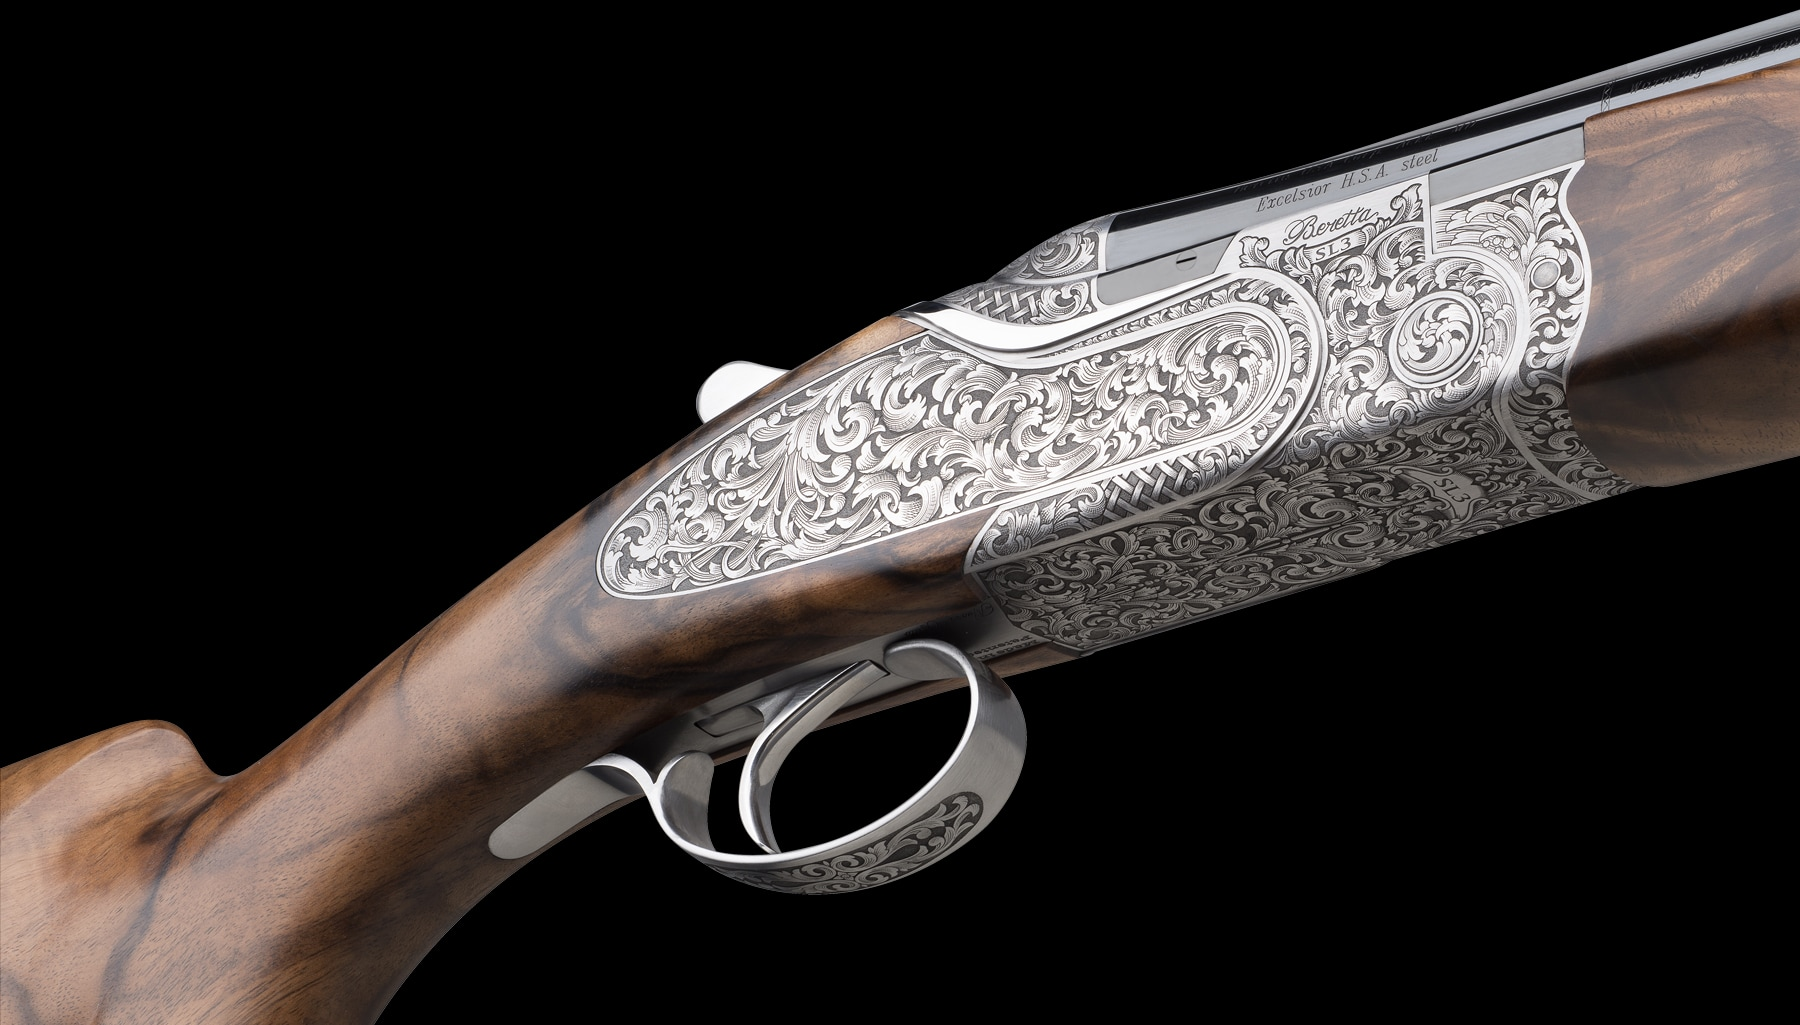 A fine English scroll engraving for a stunning traditional look.